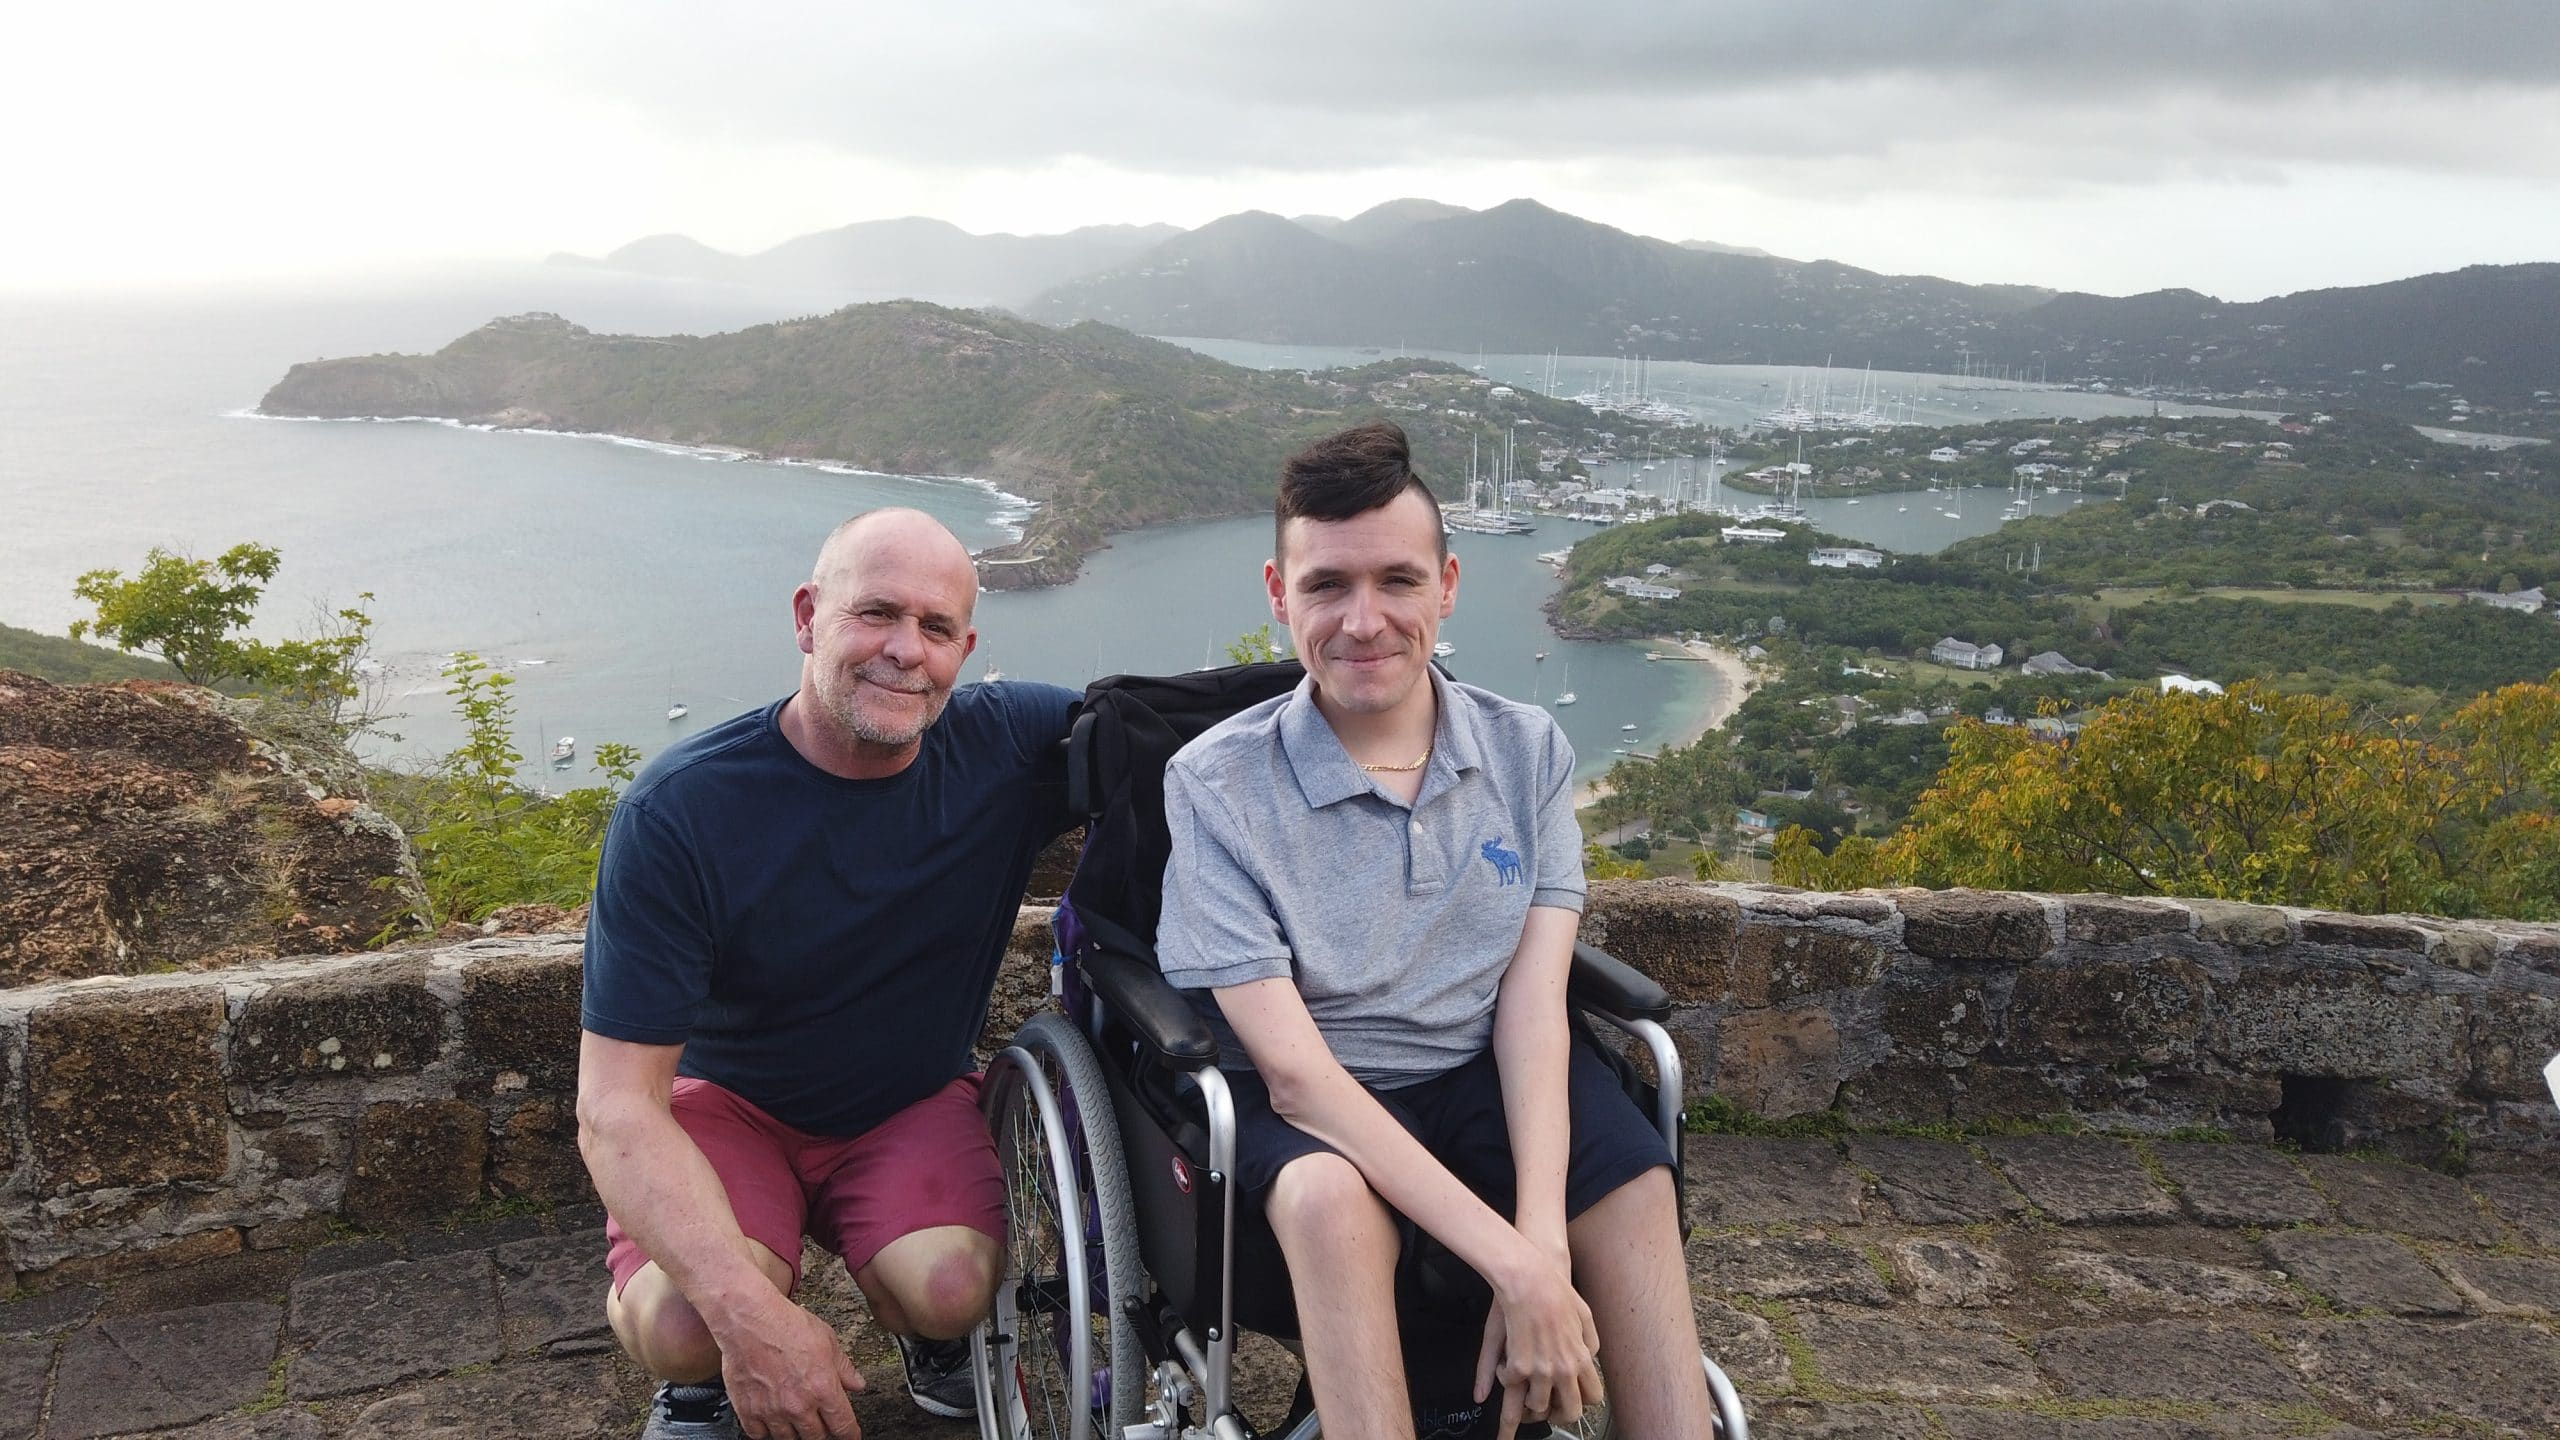 Josh is sat in his manual wheelchair with his fathers arms around him crouched. In the background is the sea, boats, rain in the hills.